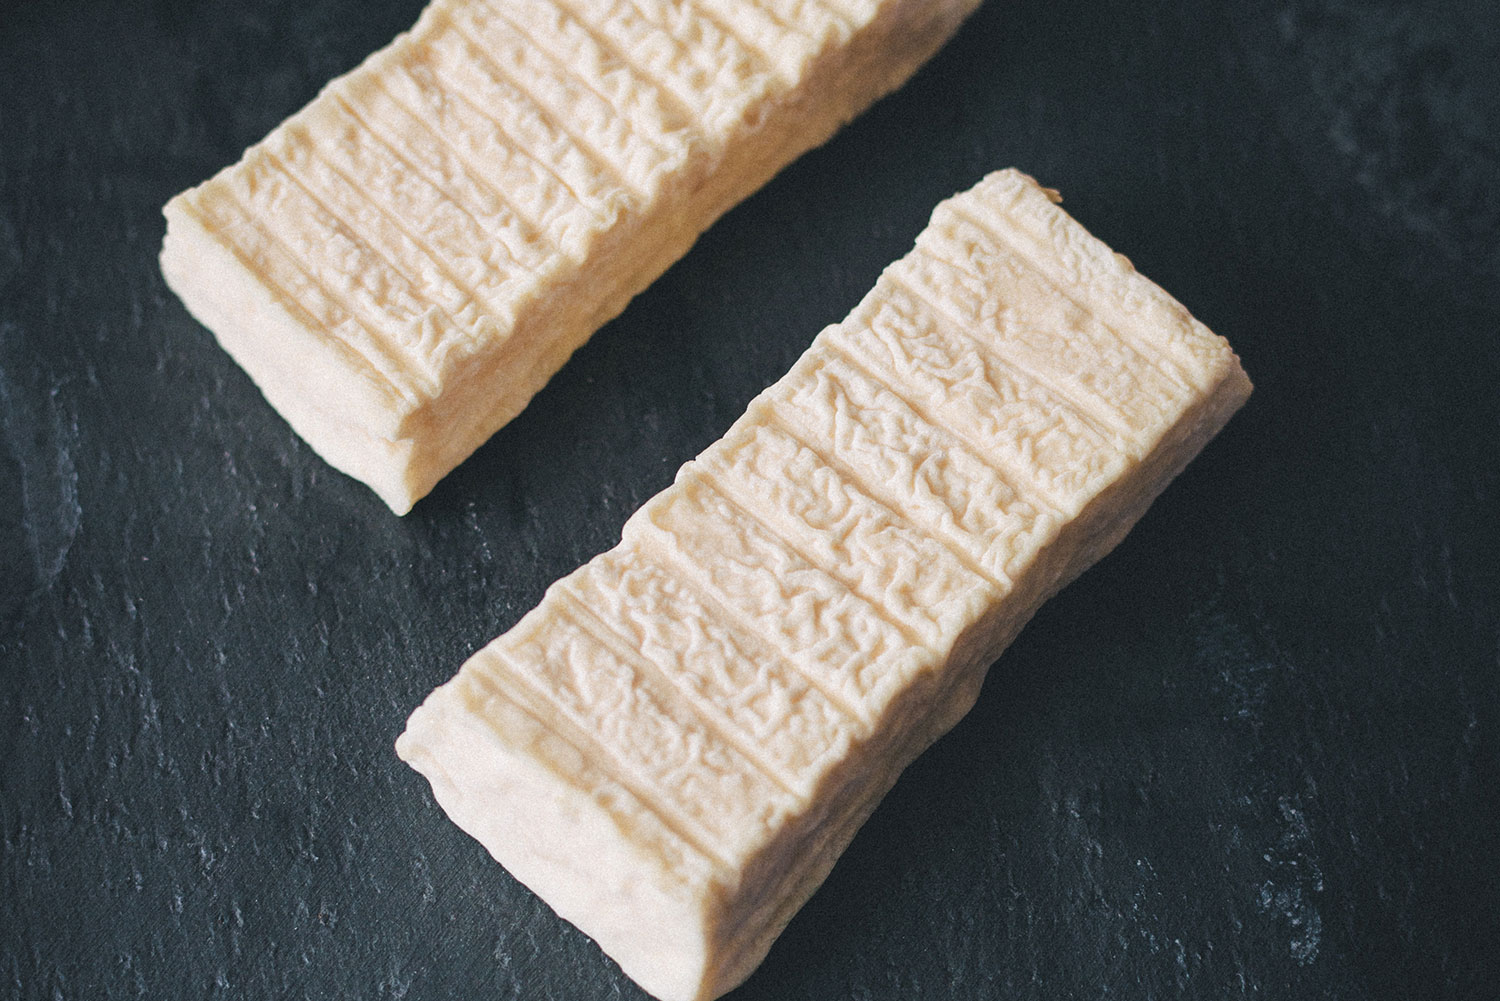 Innes-Brick-British-Goats-Cheese.jpg